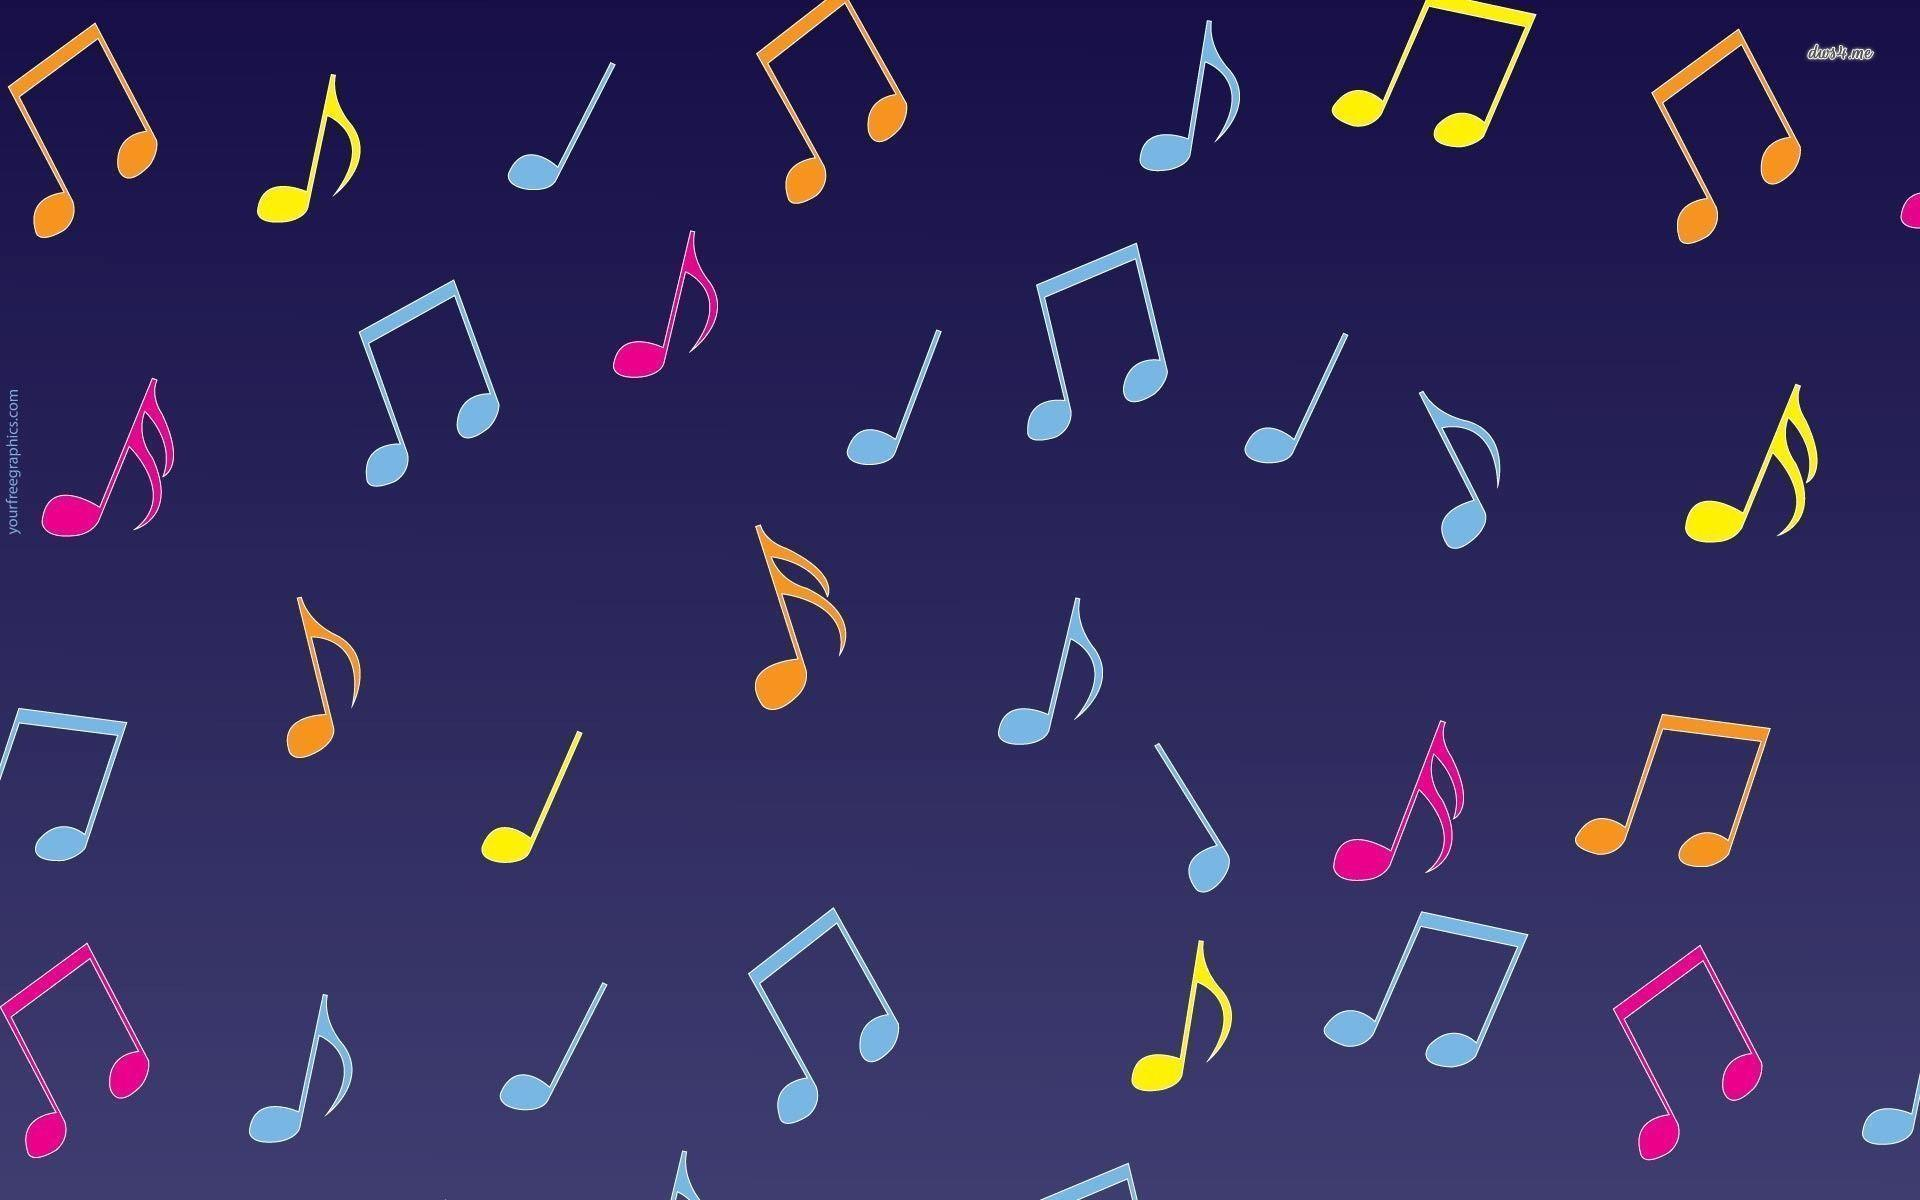 Rainbow Music Notes Background Hd Wallpaper Background Images: Music Note Backgrounds